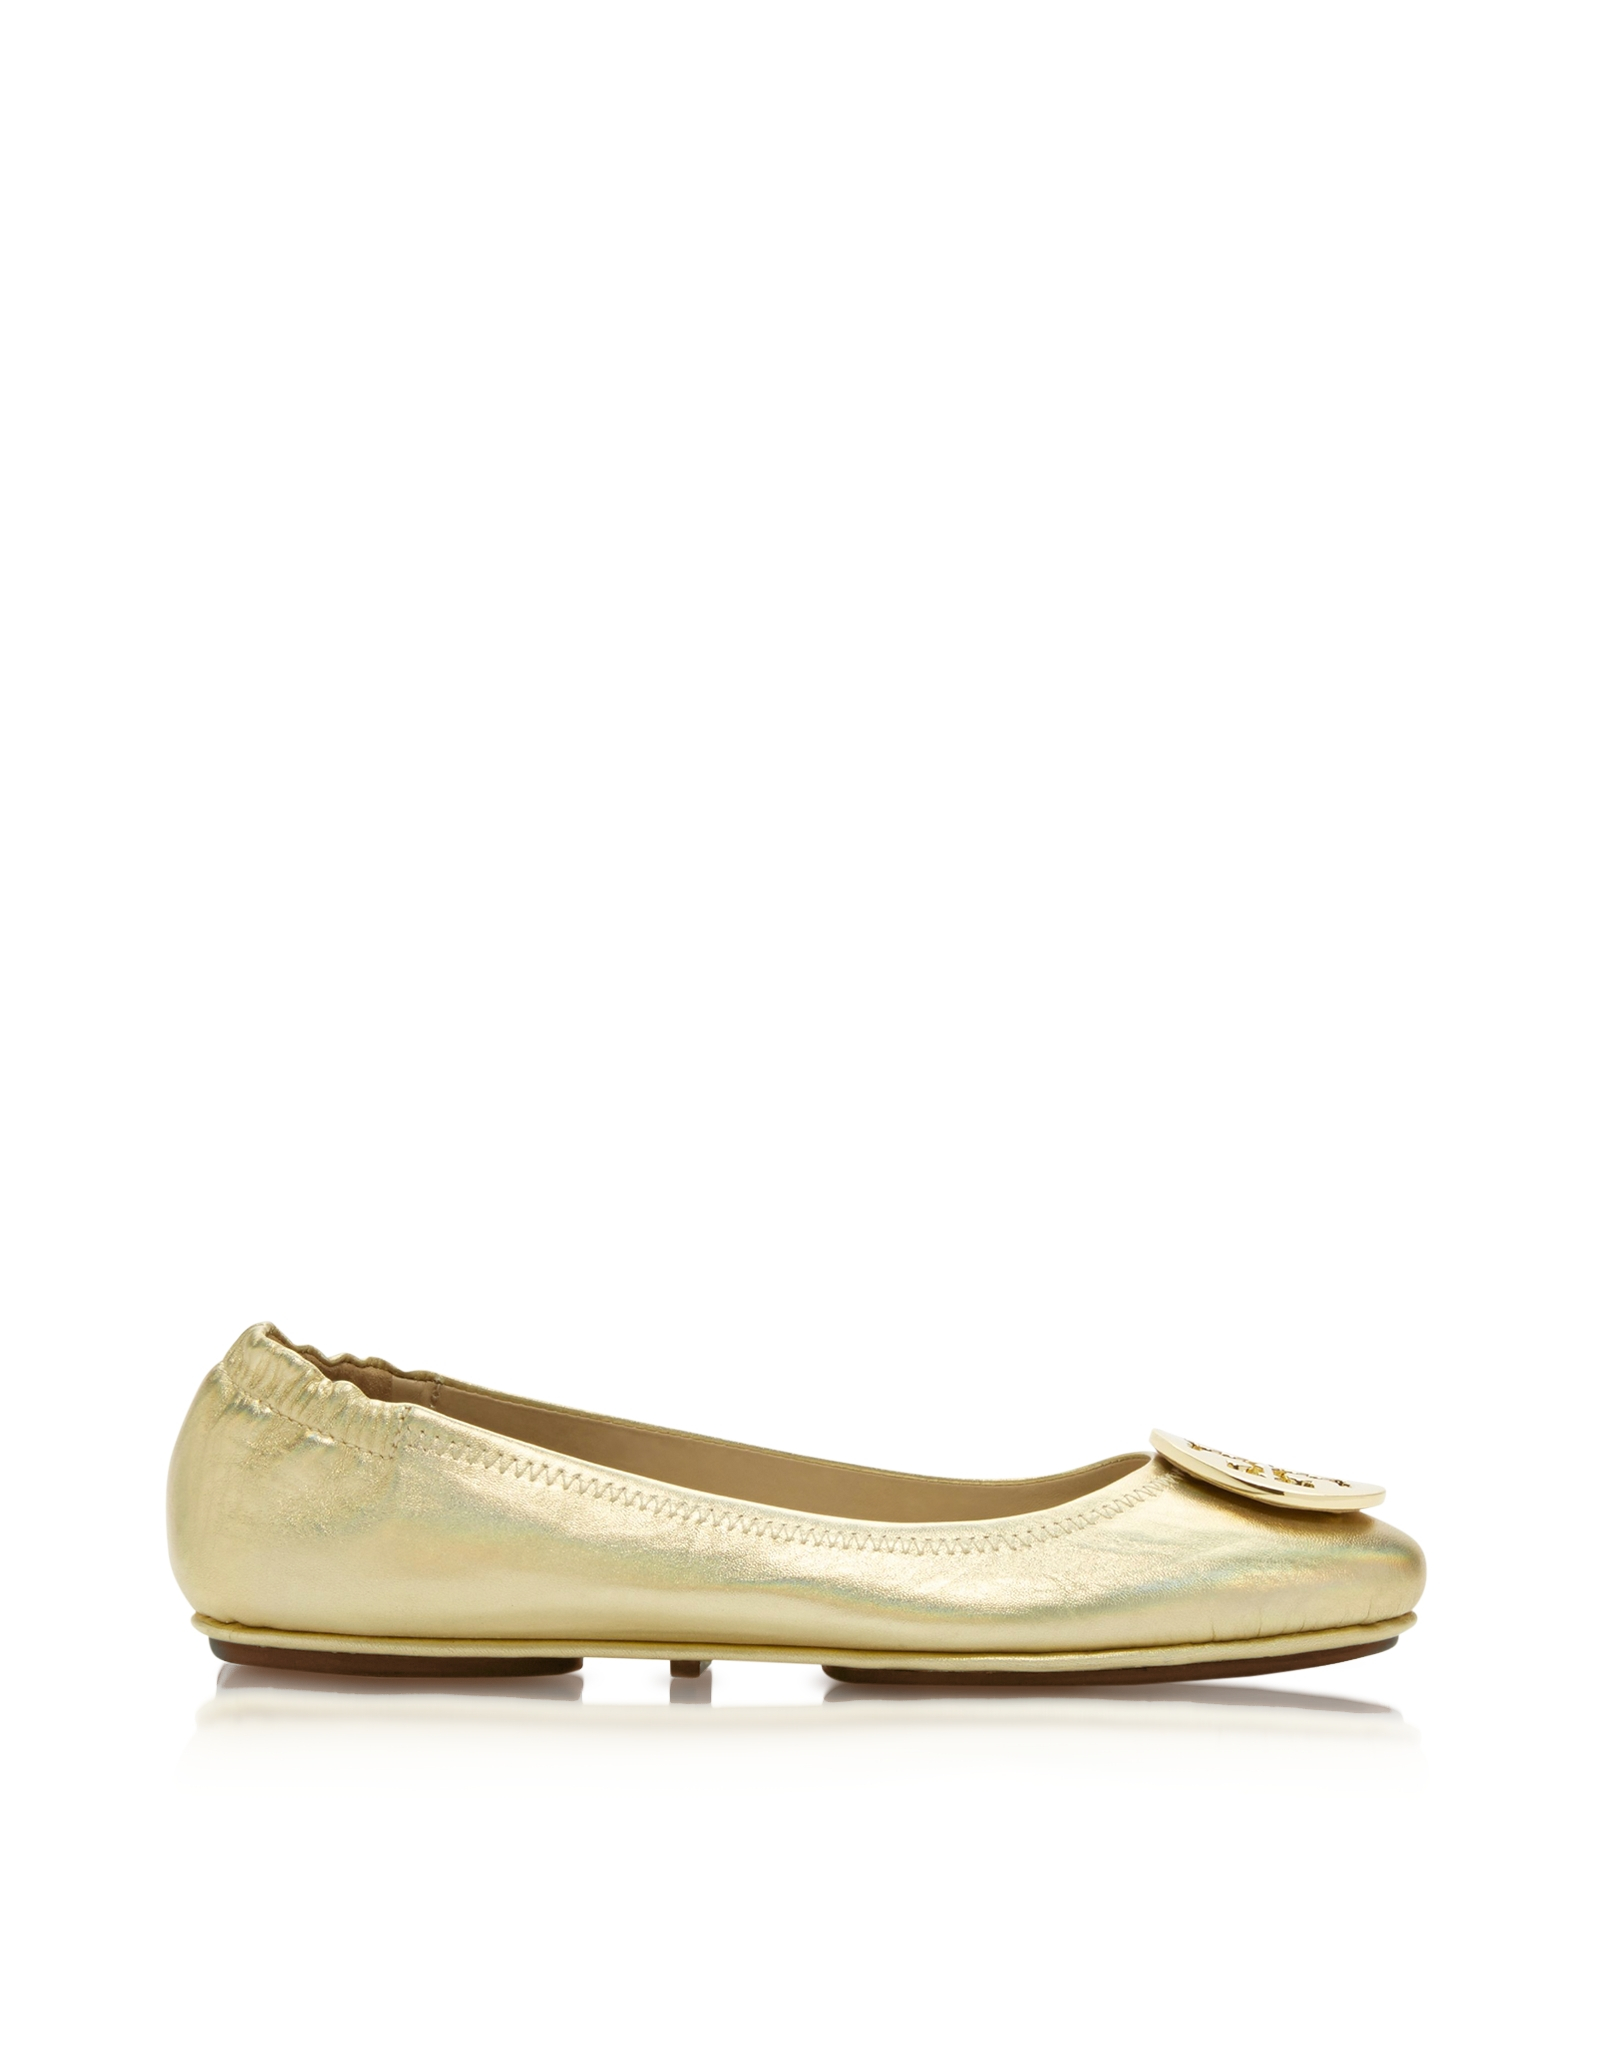 Tory Burch Minnie Leather Travel Ballet Flats In Natural  Lyst